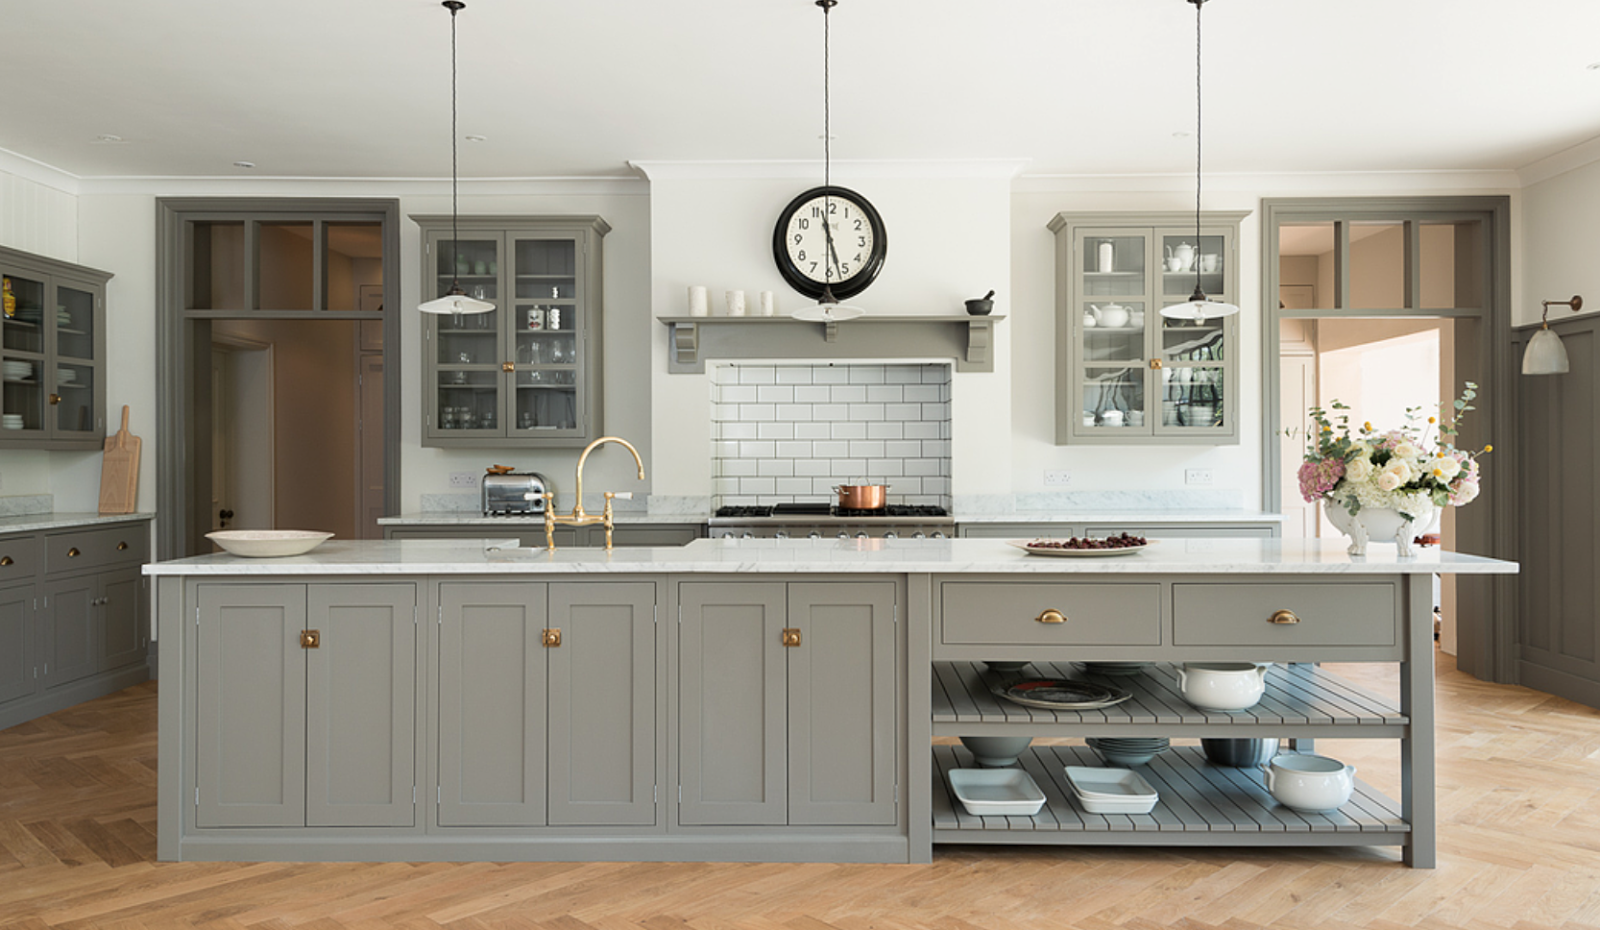 The Polished Pebble The Kitchen Considered The English Scullery Cooks Kitchen